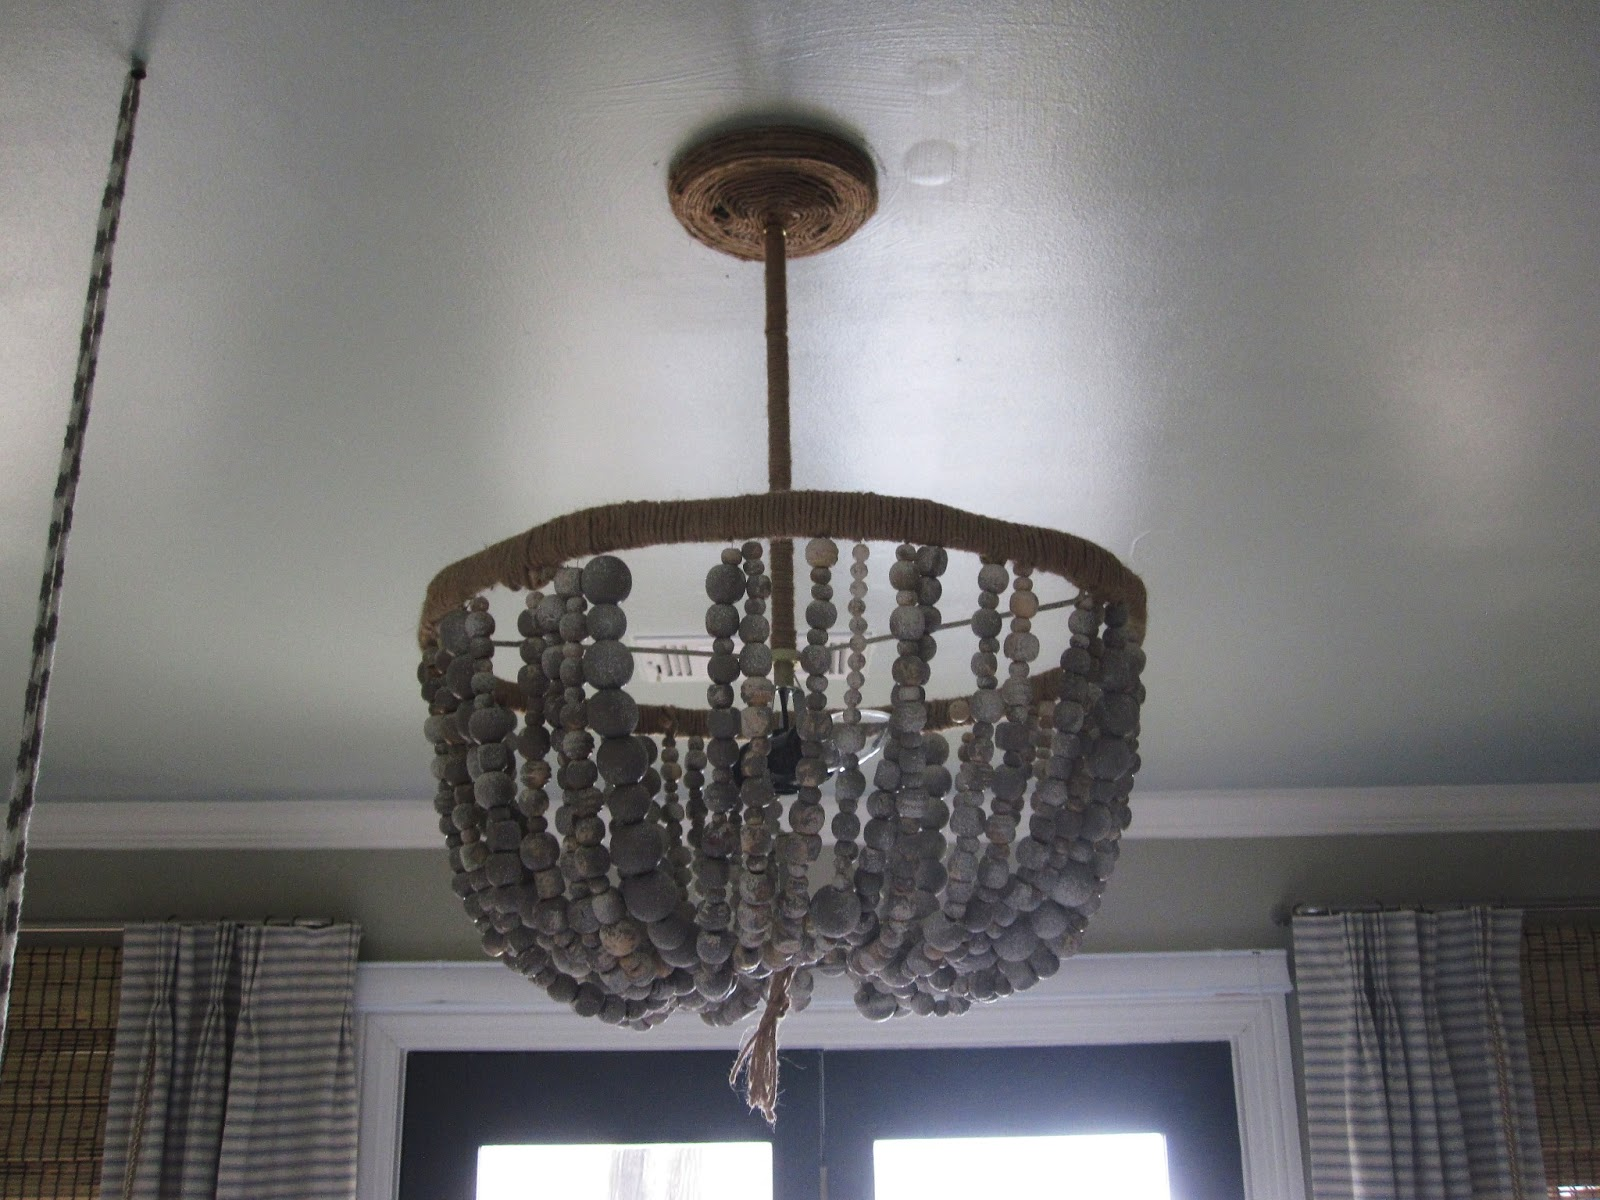 Have You Ever Tackled Making A Light Fixture